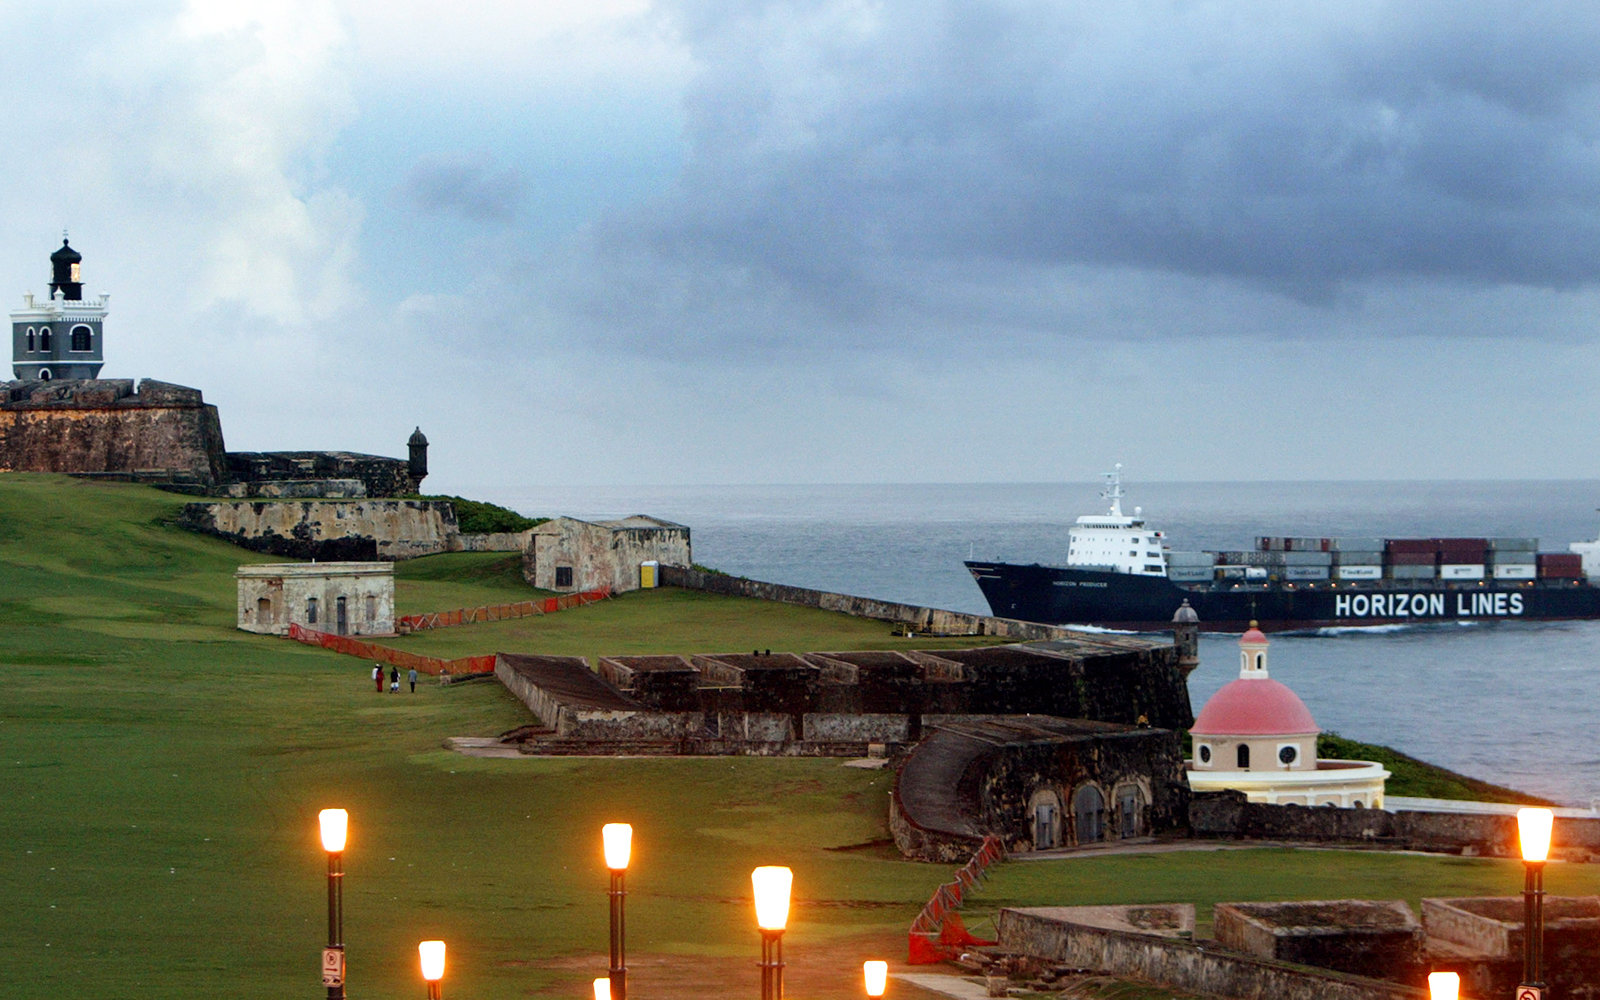 SAN JUAN, PUERTO RICO- APRIL 26: A ship comes into port past the Castillo de San Felipe del Morro April 26, 2004 in Old San Juan, the original capital city of San Juan, Puerto Rico. Begun in the early 16th century, El Morro was the city's primary protecti